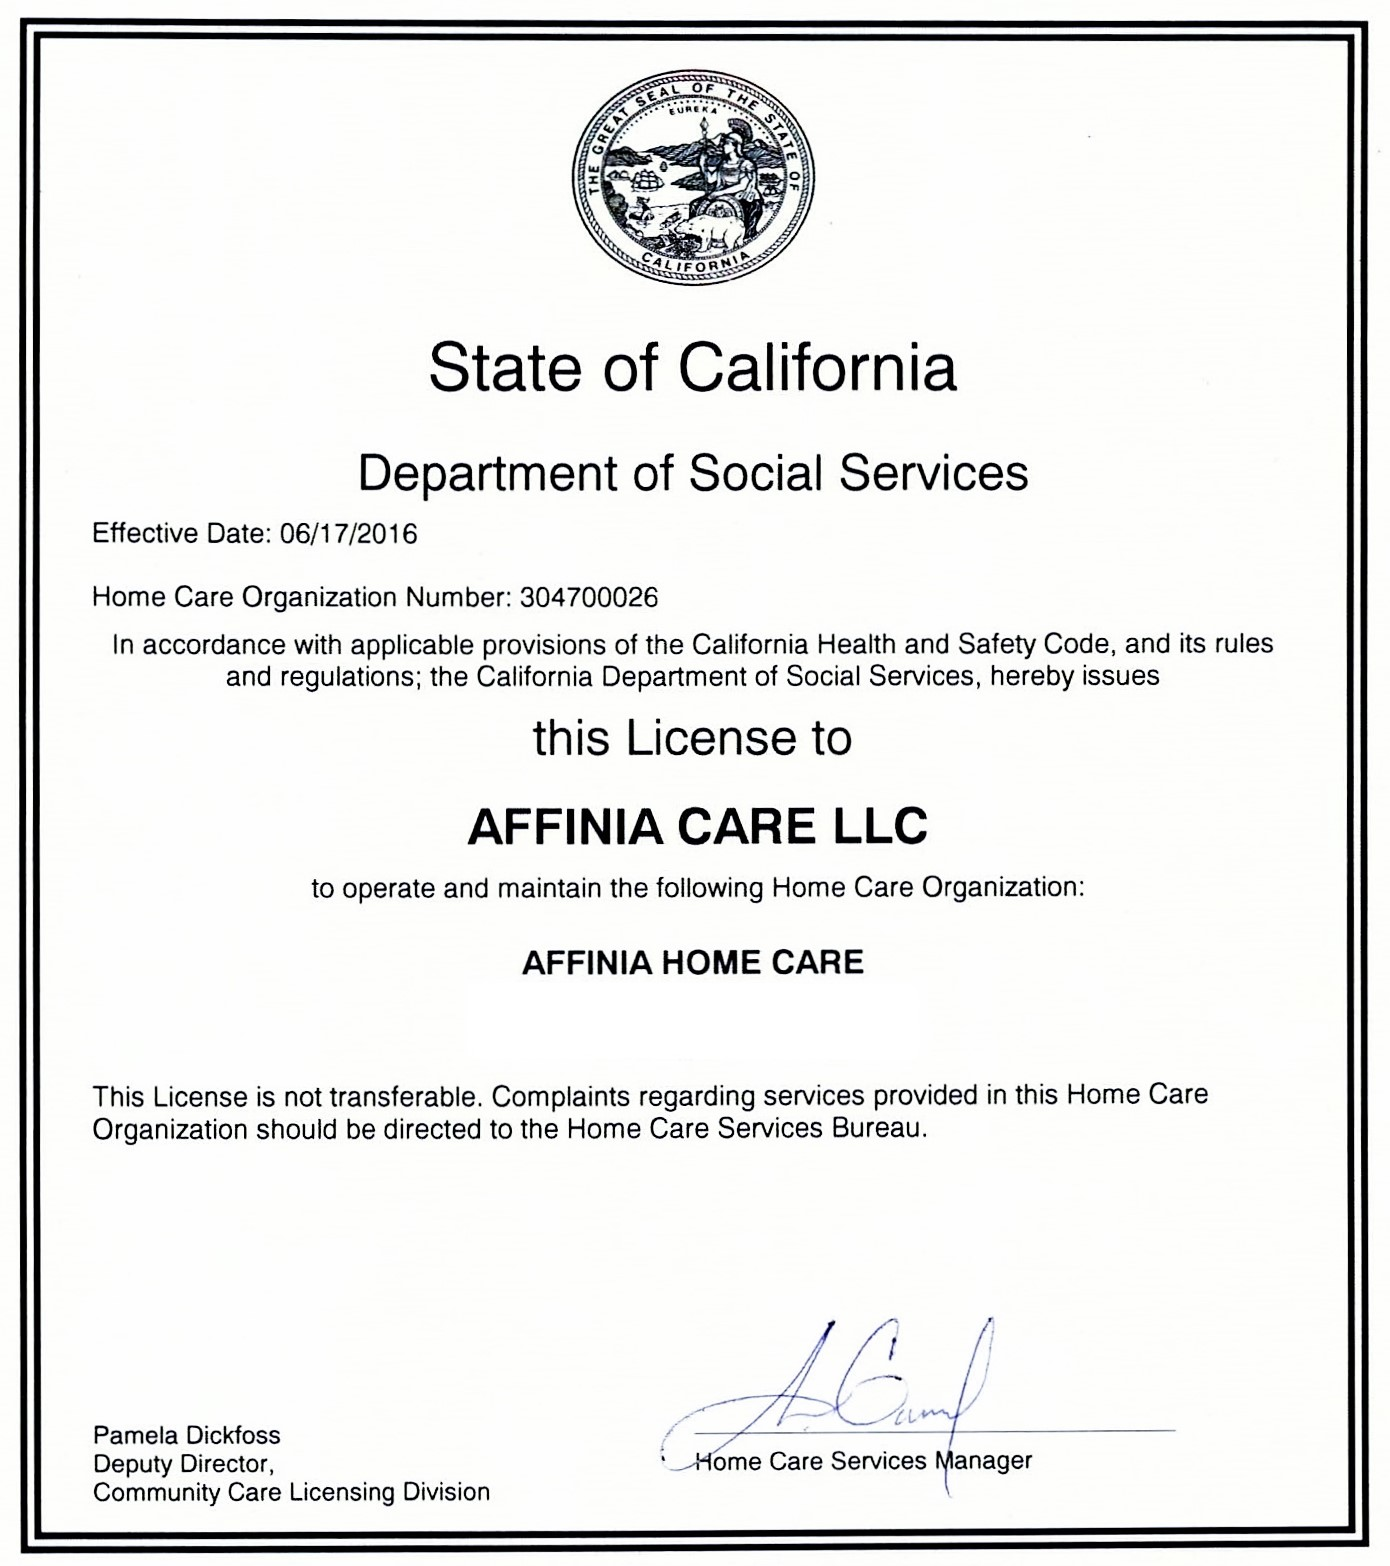 Affinia Home Care Licensed By The State Of California Affinia Home